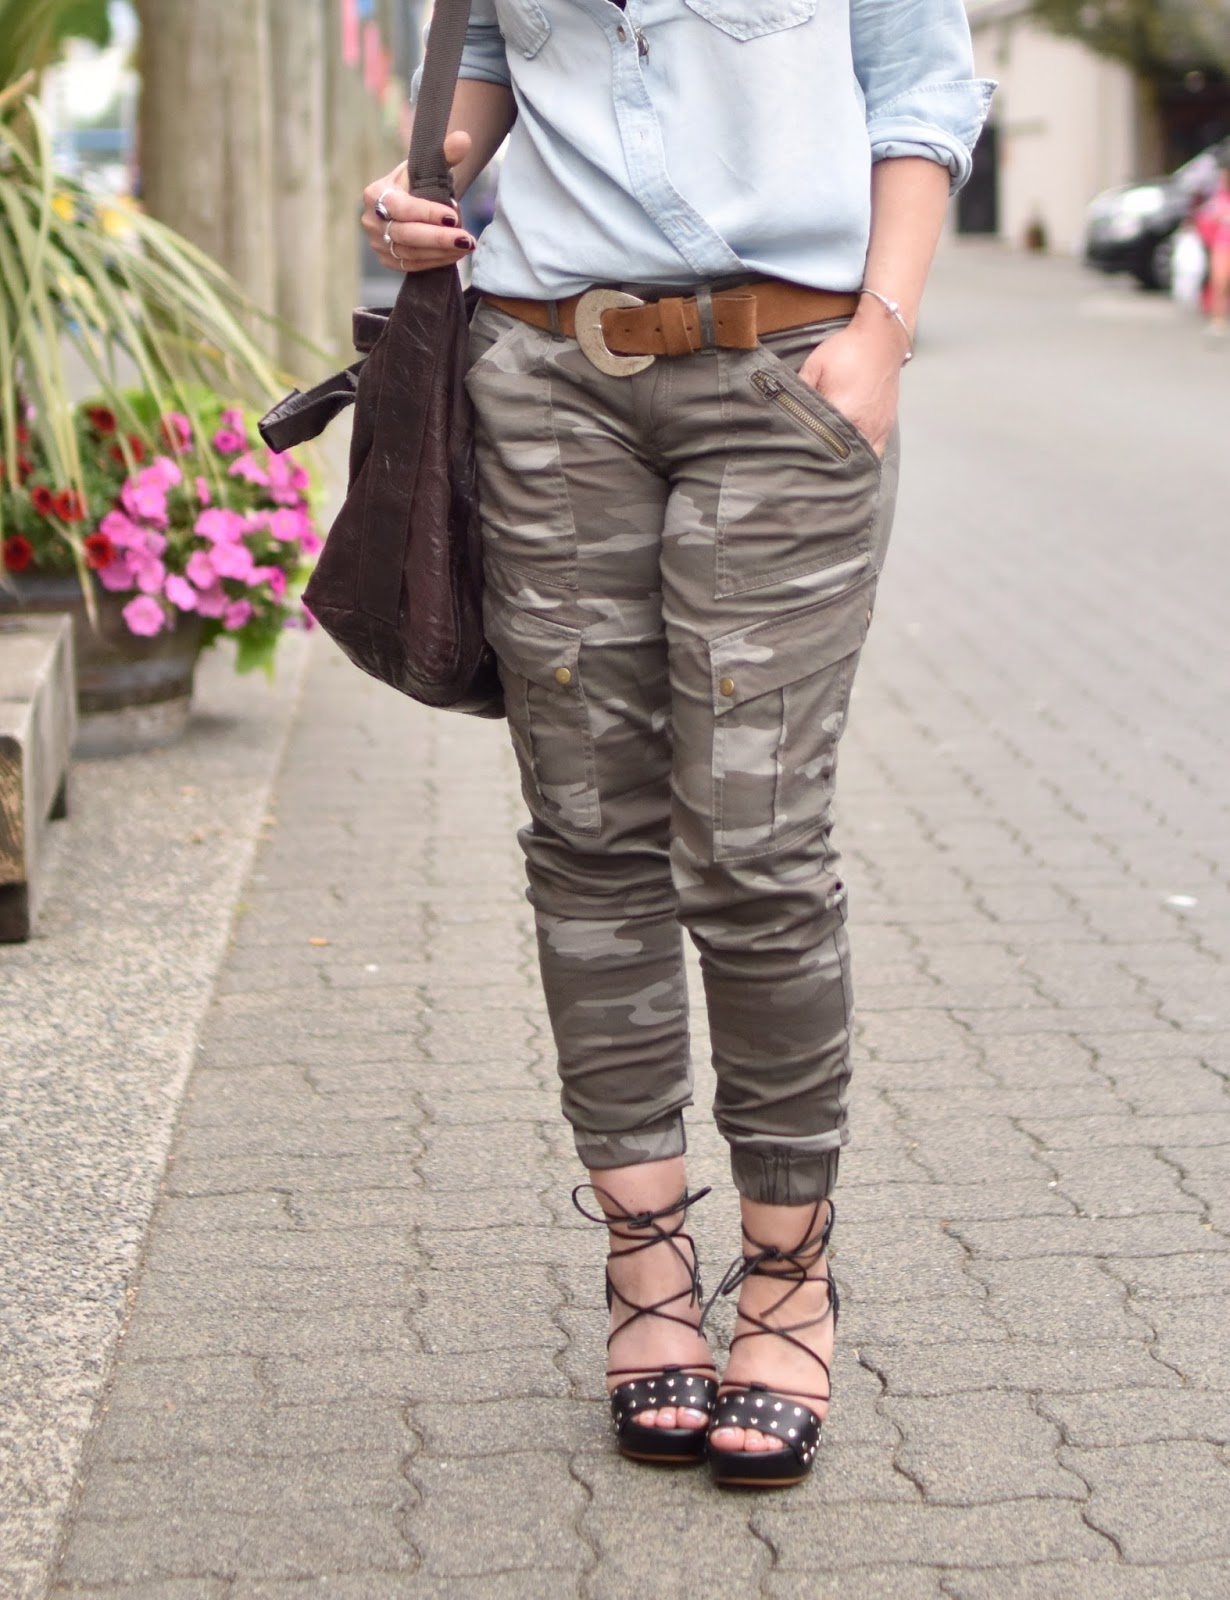 Monika Faulkner personal style inspiration - camo pants, chambray shirt, lace-up sandals, matt & nat satchel